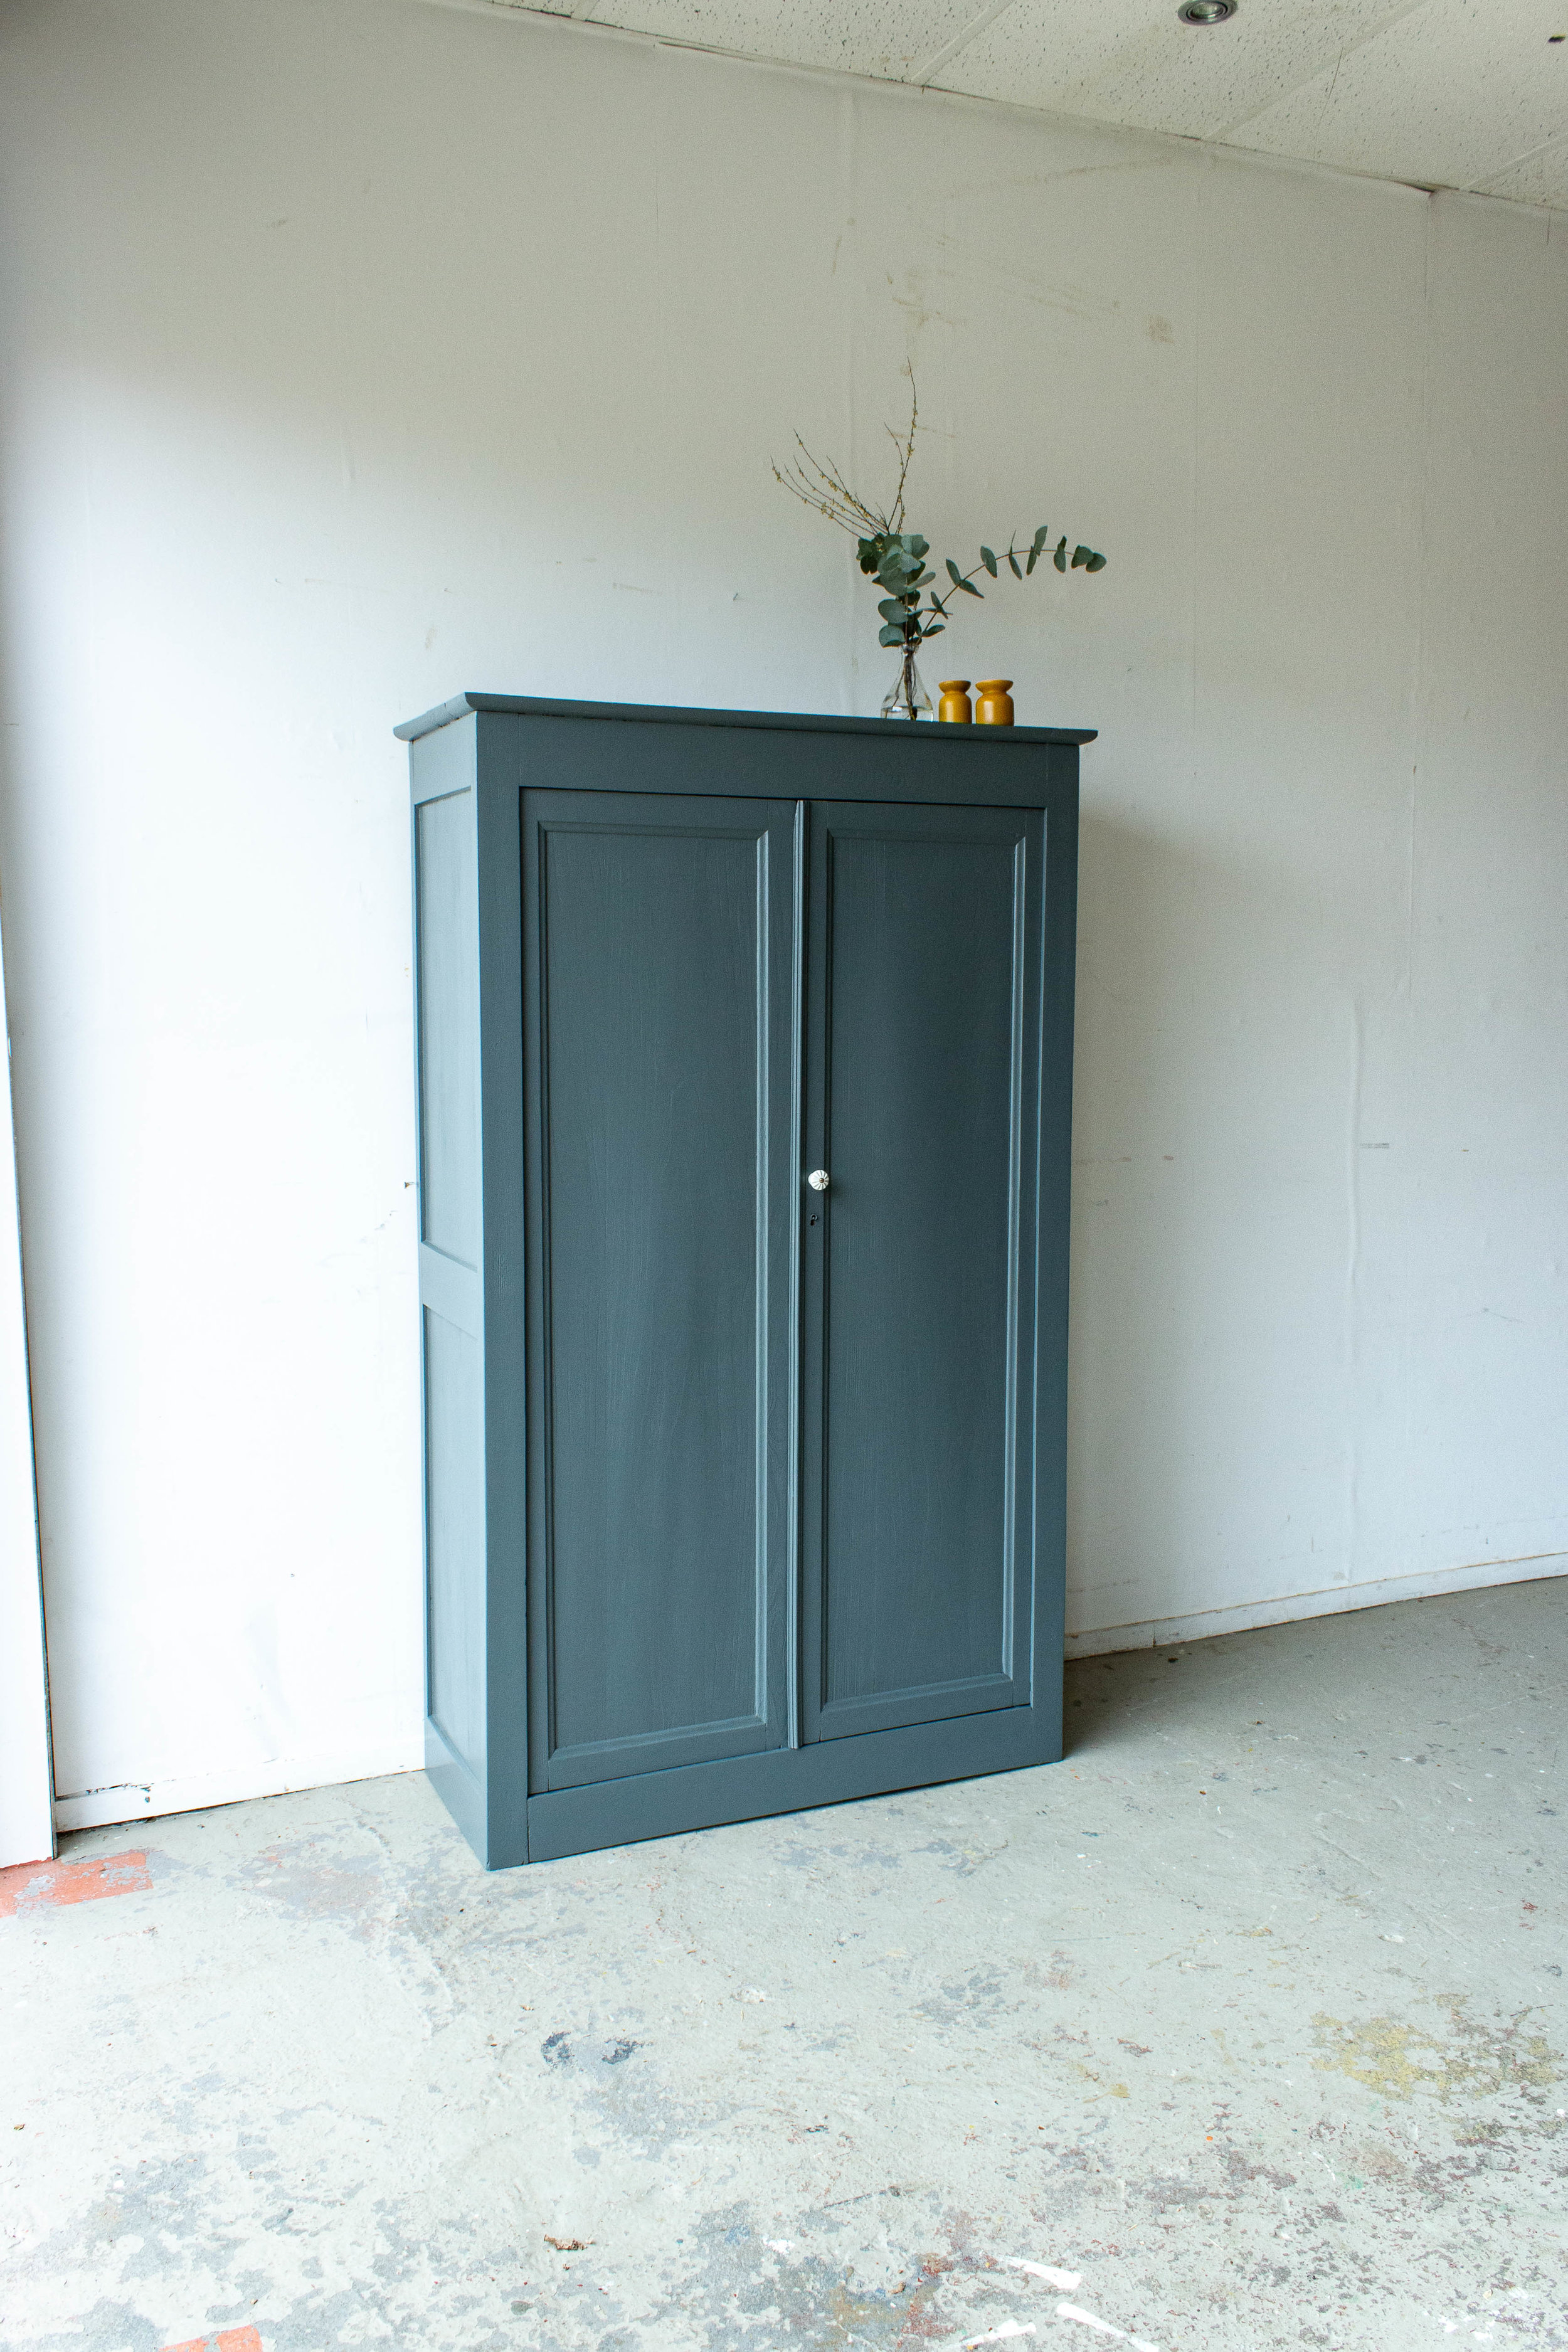 1471 - Vintage kast in antraciet-6.jpg